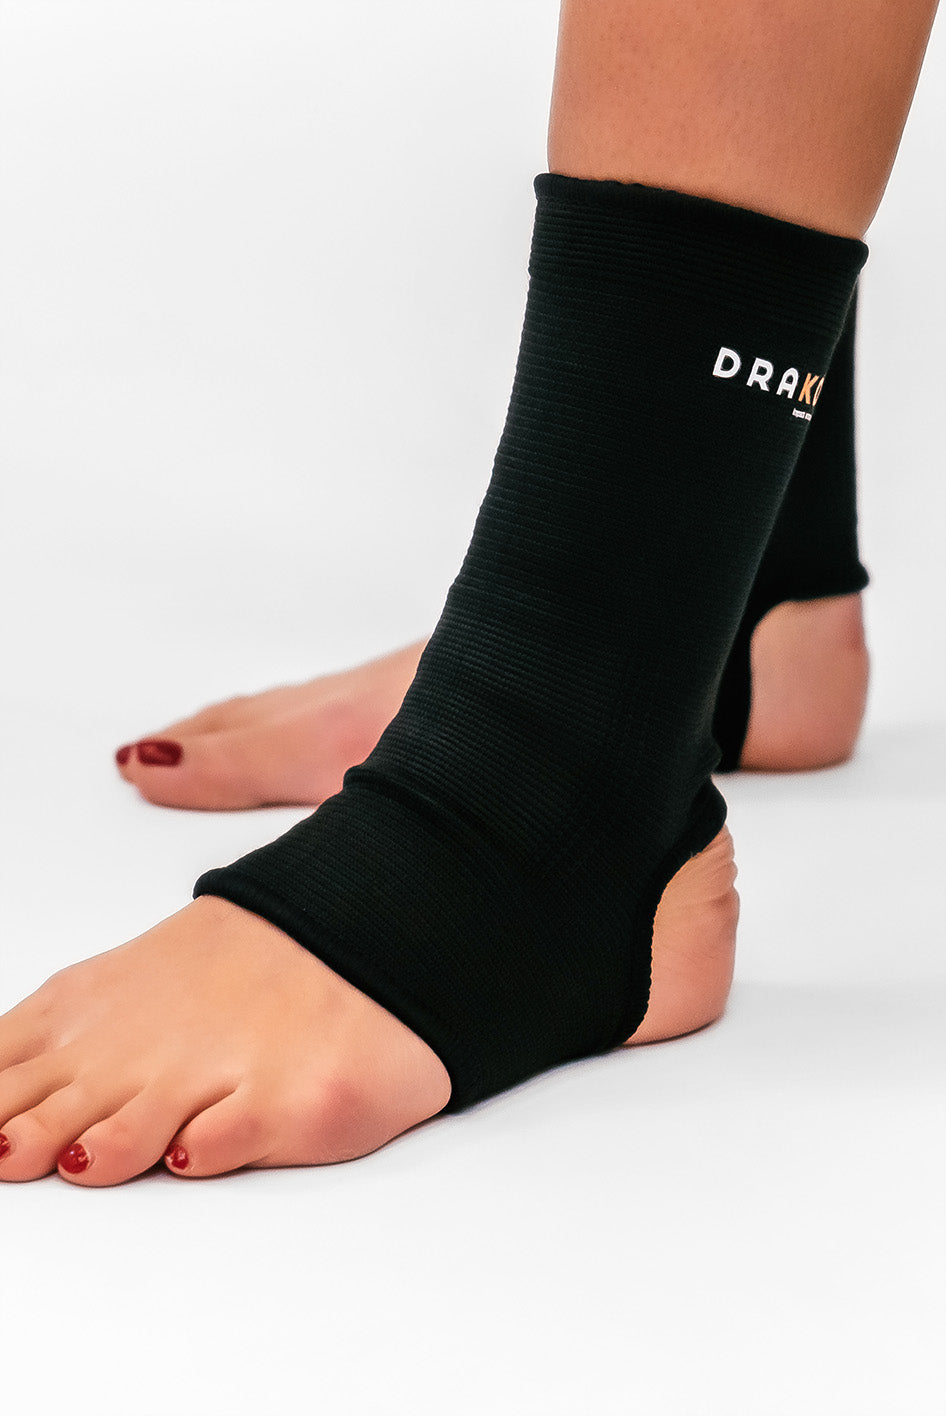 DRAKO ANKLE GUARD